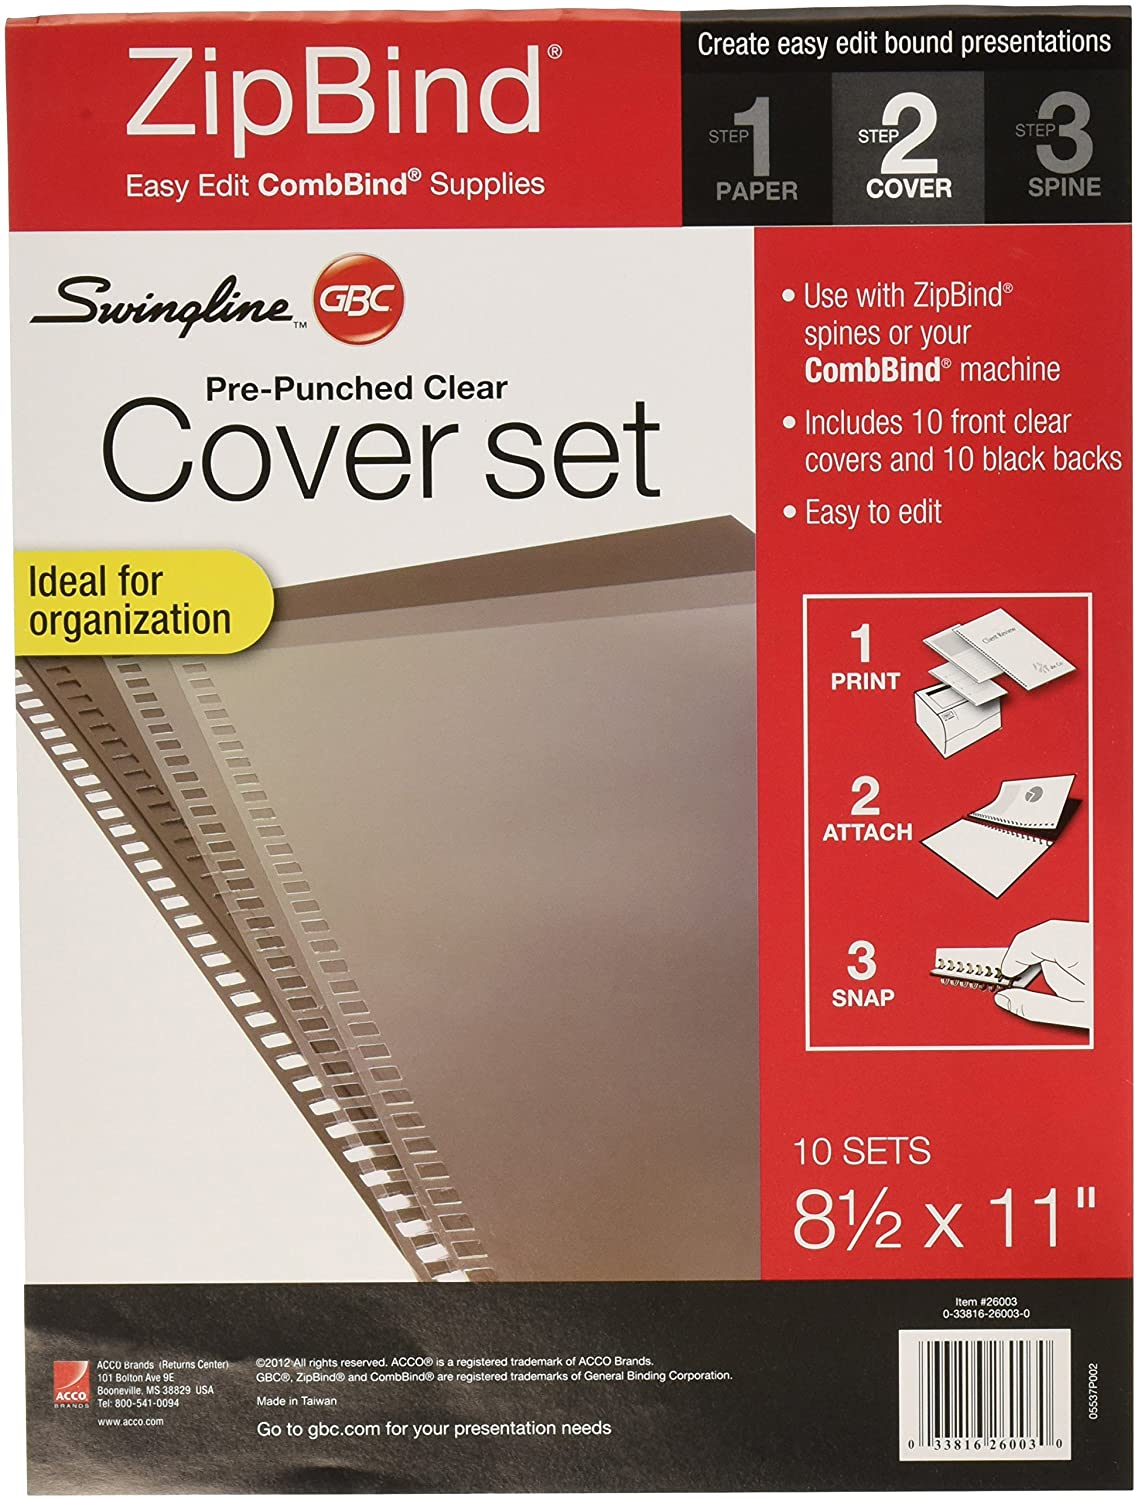 Swingline 3381626003 GBC Pre-Punched Binding Covers, 8-1/2 by 11-Inch, 10 Clear Front Covers and 10 Black Backs